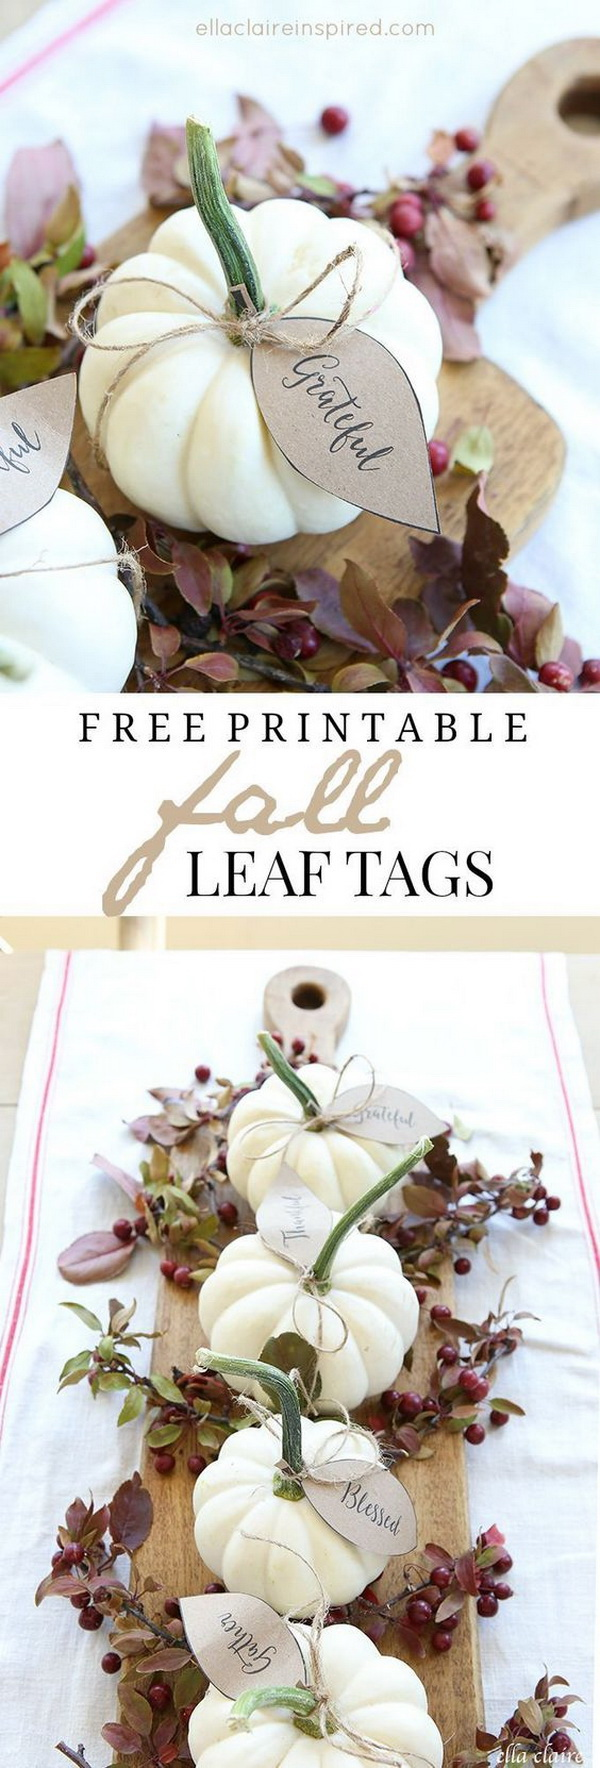 Pumpkin Leaves Free Printable. Great pumpkin centerpiece with lovely printables for you to add to your home decor! It also makes a little gift to yours this Autumn season!